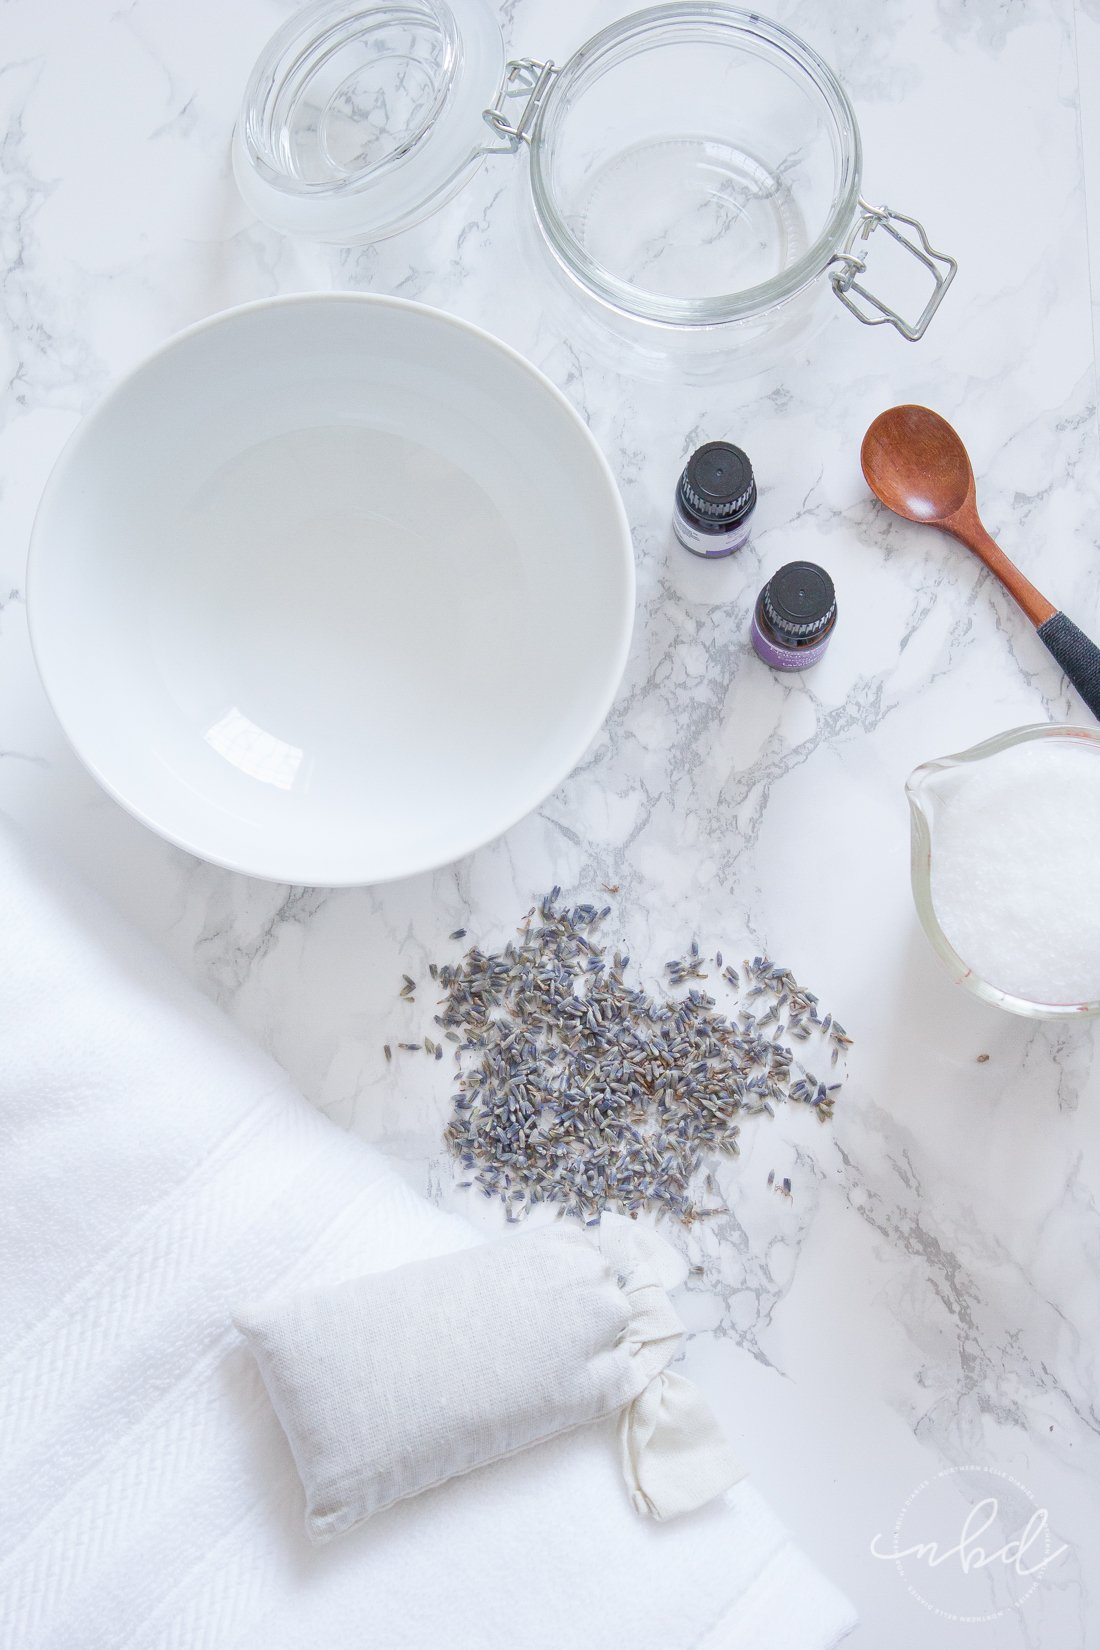 How to make DIY Lavender Bath Salts